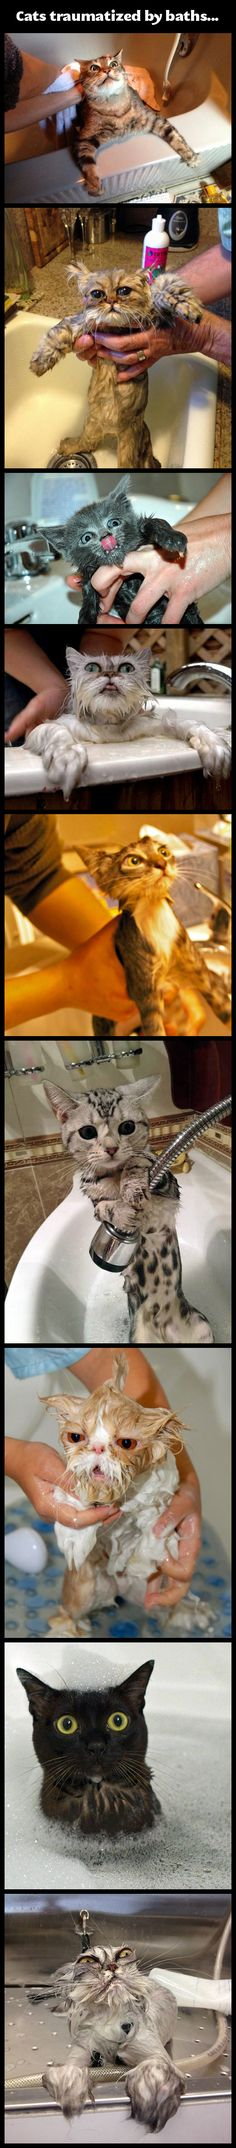 Cats traumatized by baths. #WhyILoveCats